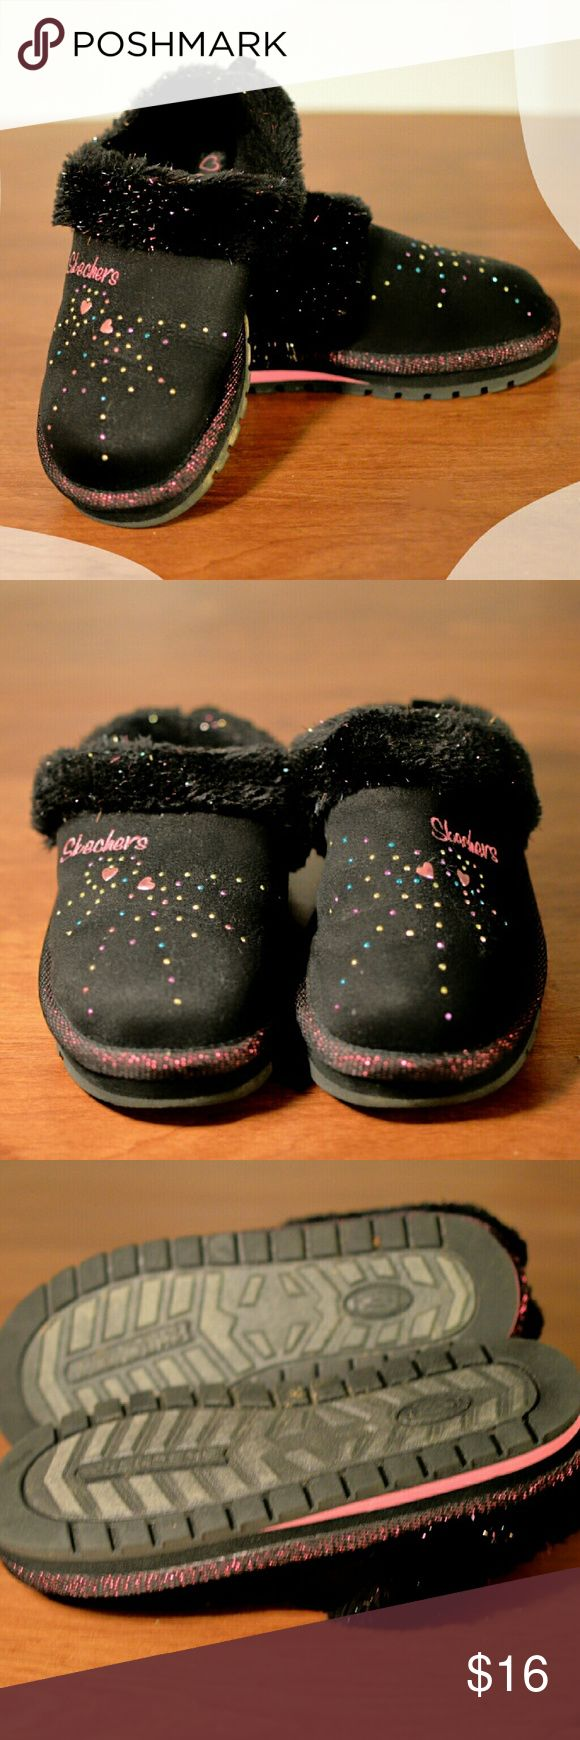 24hr Sale * Twinkle Toes Skechers Fuzzy Slip-ons Cute and cozy slip-ons with tread bottoms. I don't think my daughter wore them one time since Christmas morning. Kids! ;) Excellent condition. Black, fuzzy inside with sprinkles of color. Size 2m. Smoke free home. Skechers Shoes Slippers